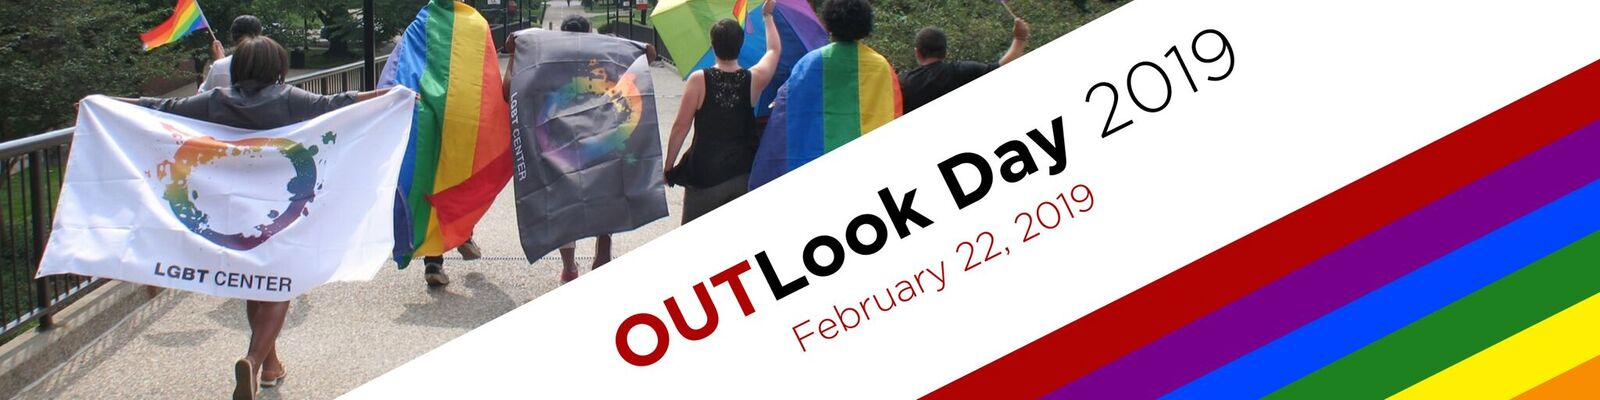 Outlook Day 2019 Banner